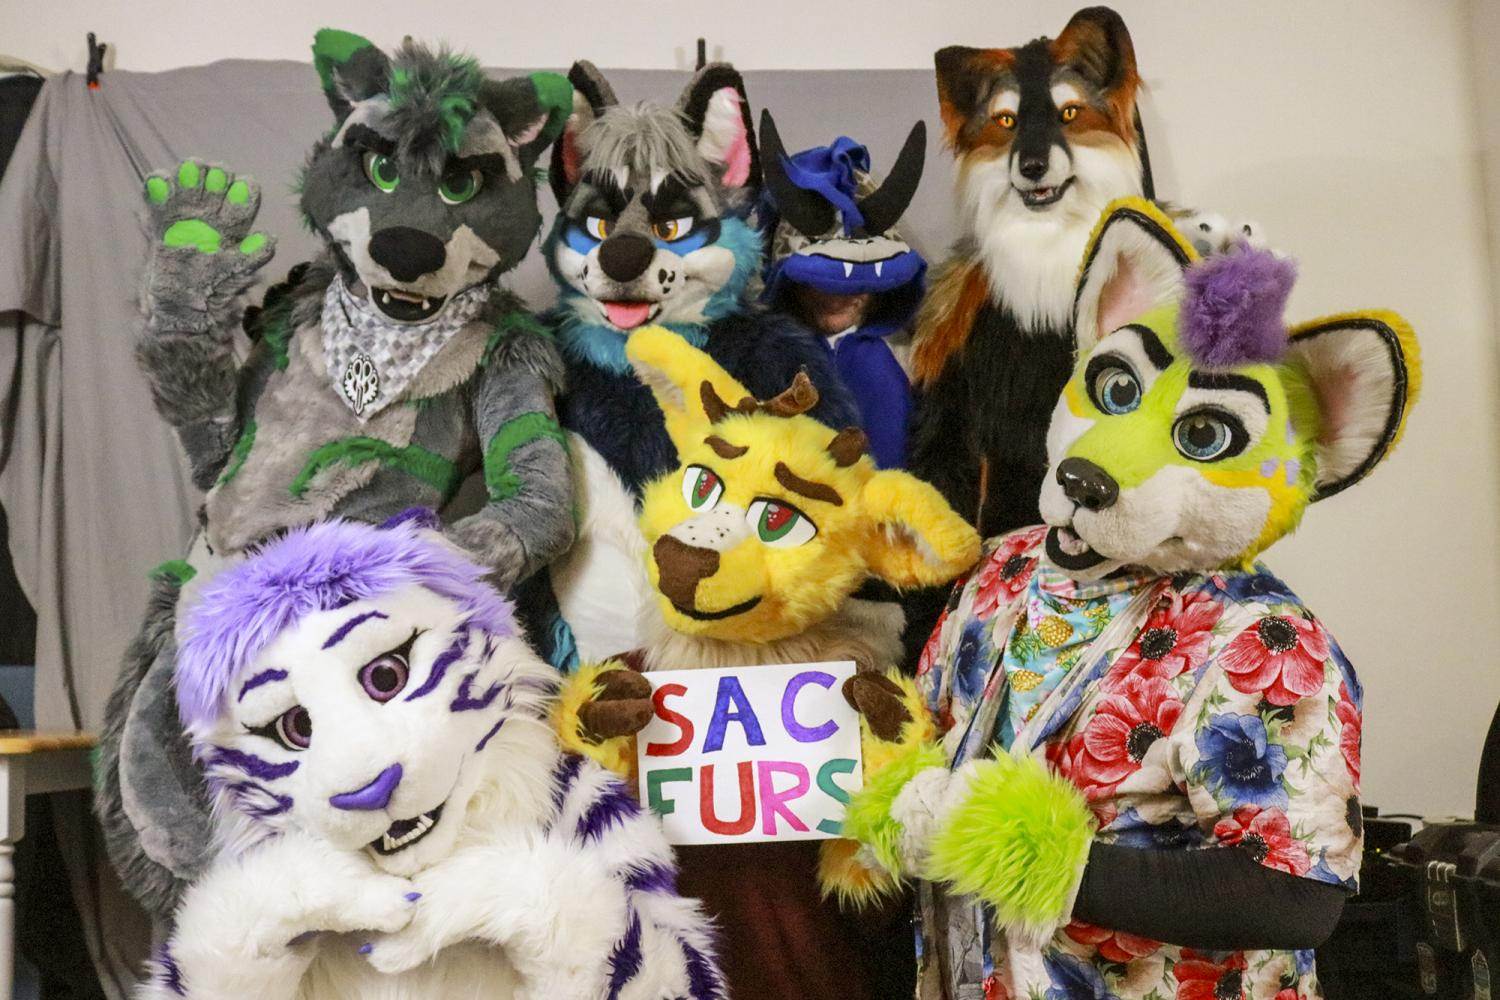 The furry fandom is a diverse group of people who enjoy expressing themselves by identifying with their